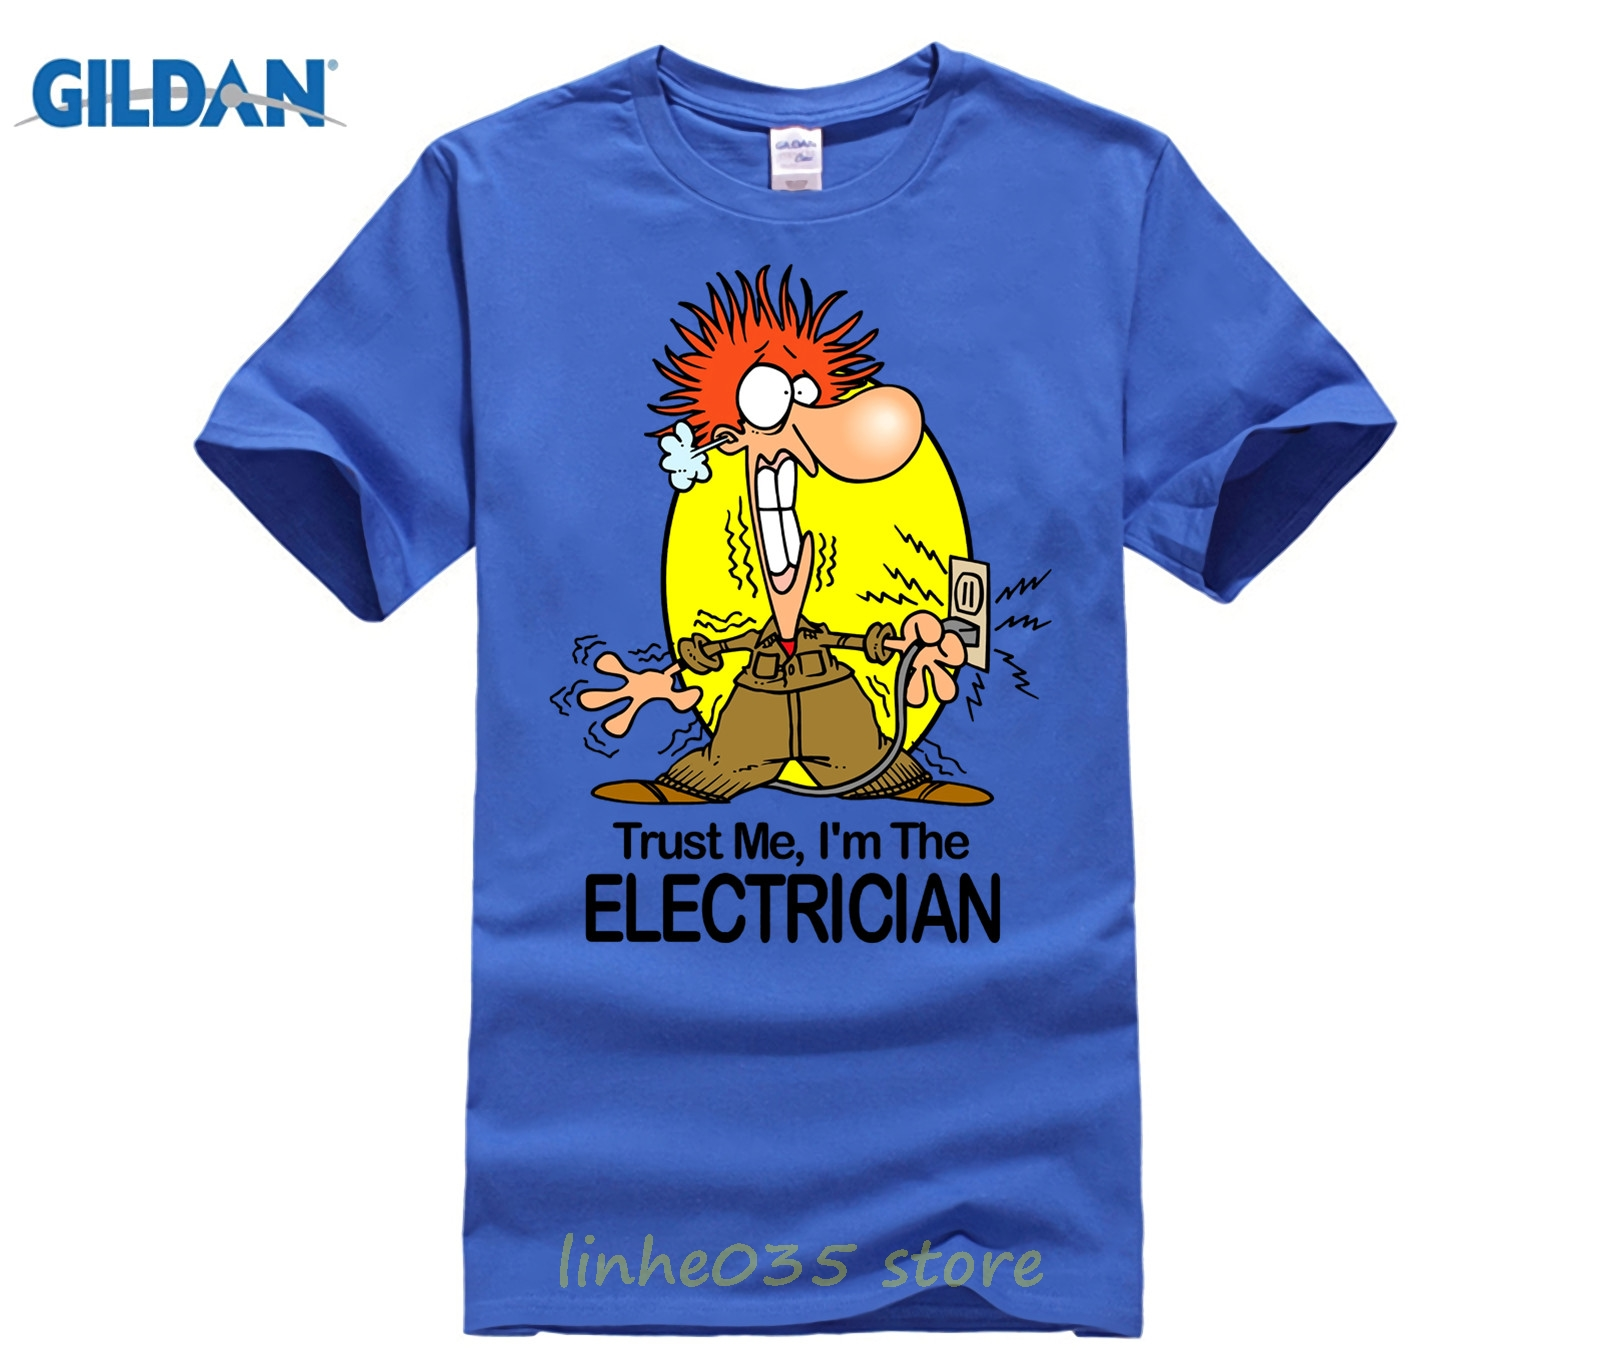 65cdbfd9e MENS FUNNY COOL NOVELTY ELECTRICIAN SPARKY NEW JOB T-SHIRTS JOKE GIFTS  PRESENTS Funny Clothing